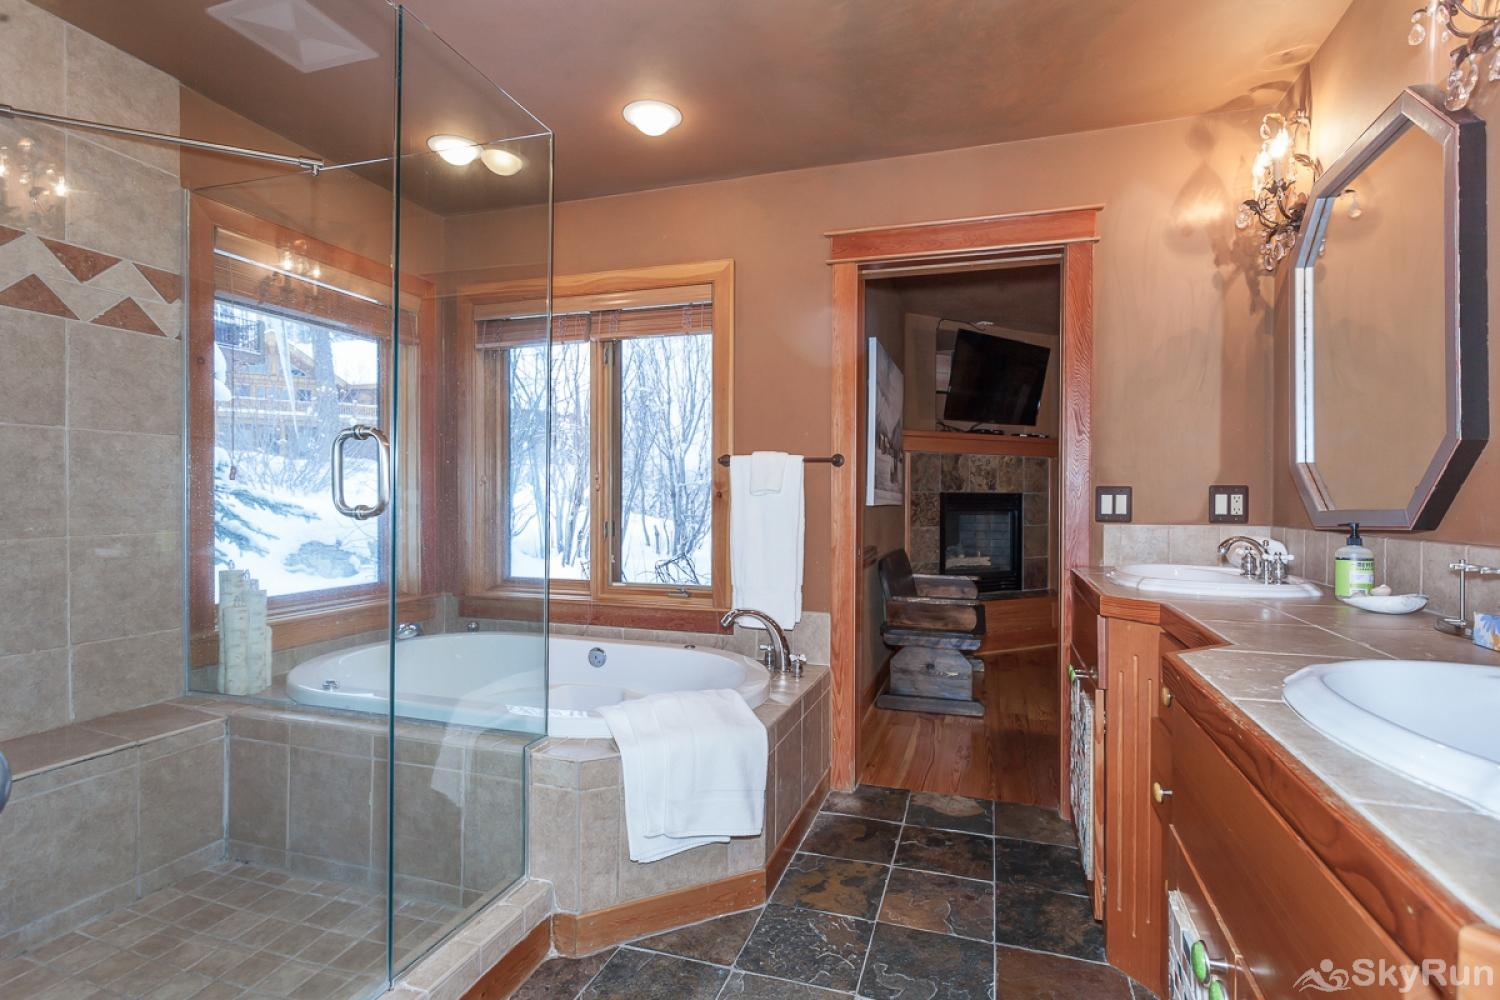 Highland Huckleberry Lodge Bison Bath = soaking tub, double vanity, walk-in shower